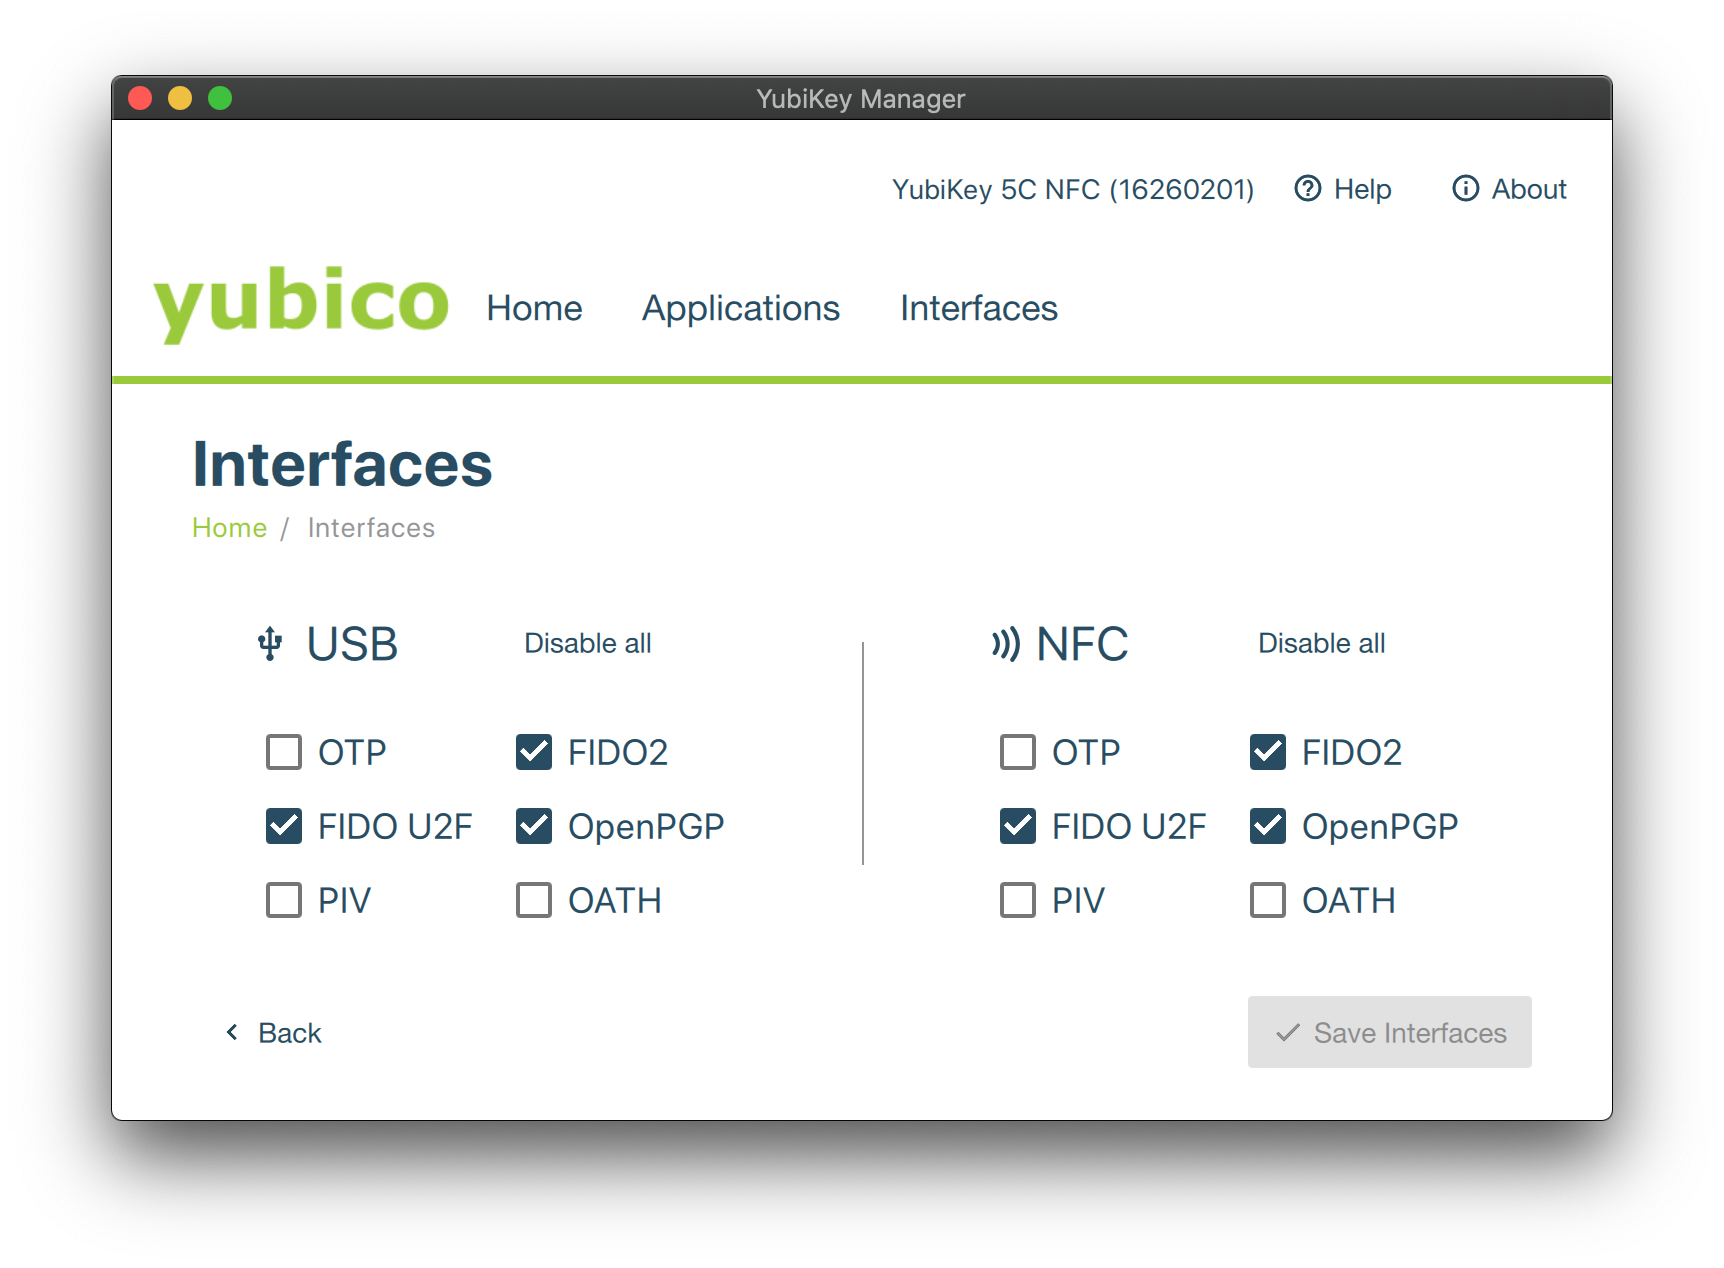 Enabled YubiKey Interfaces